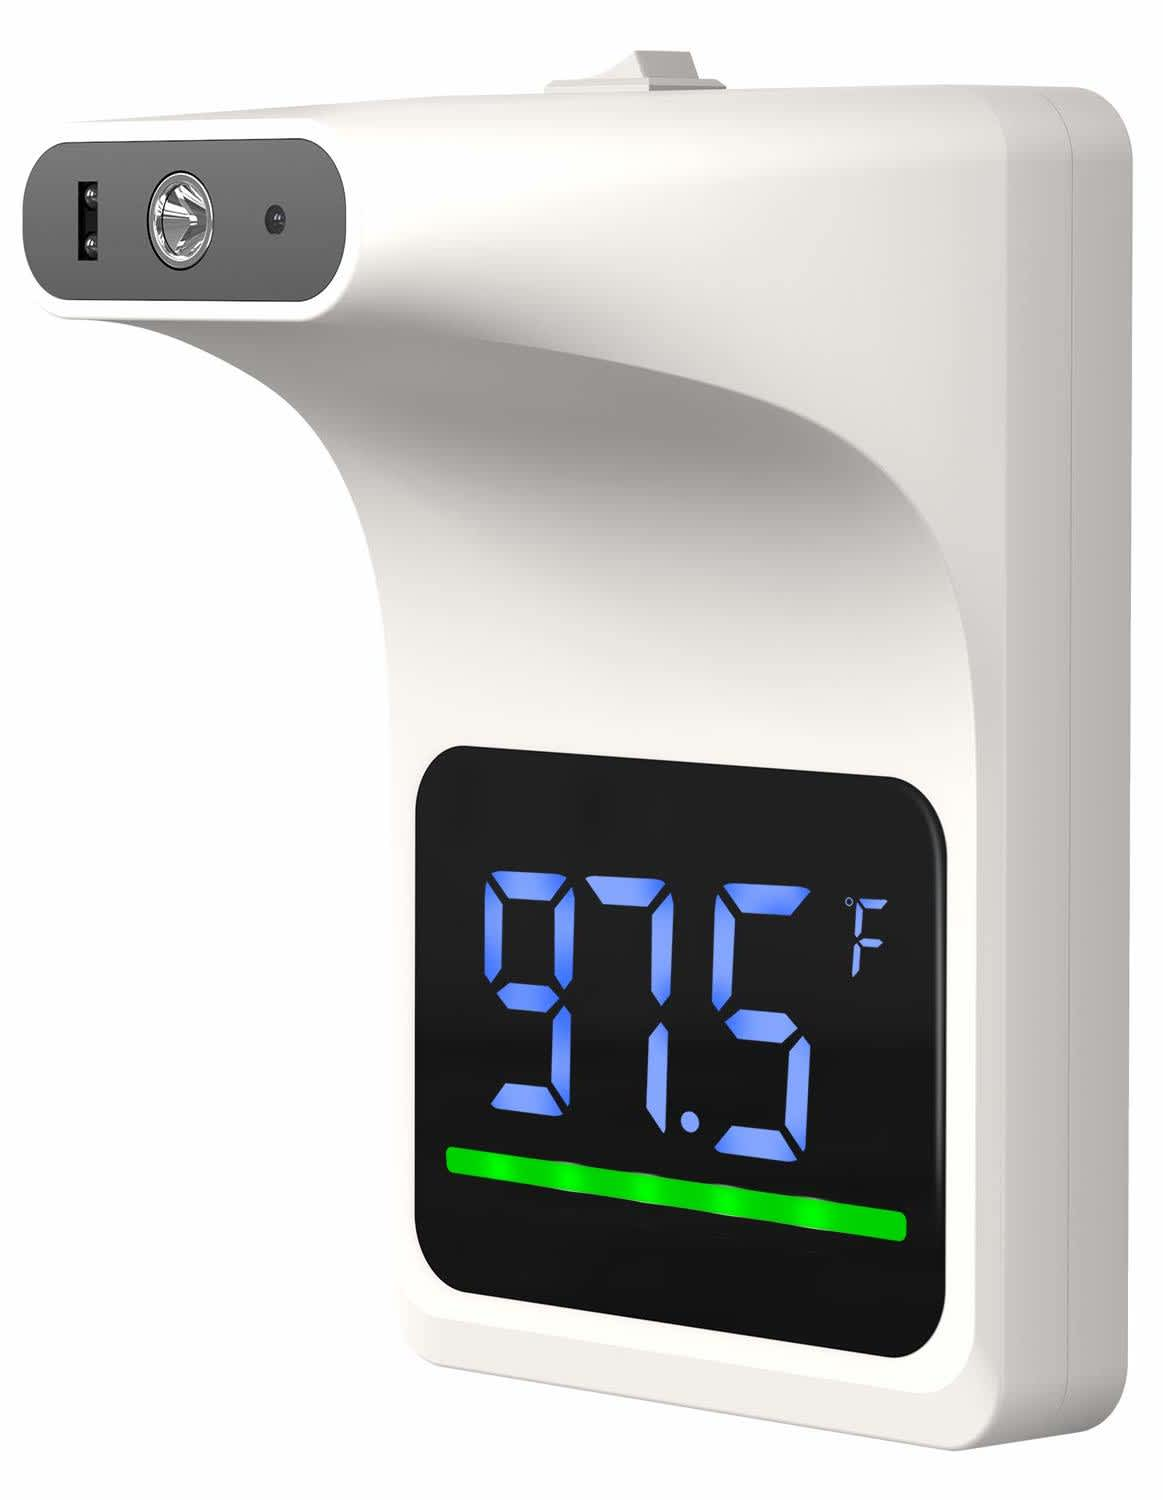 Gekka Wall Mounted Non-Contact Thermometer